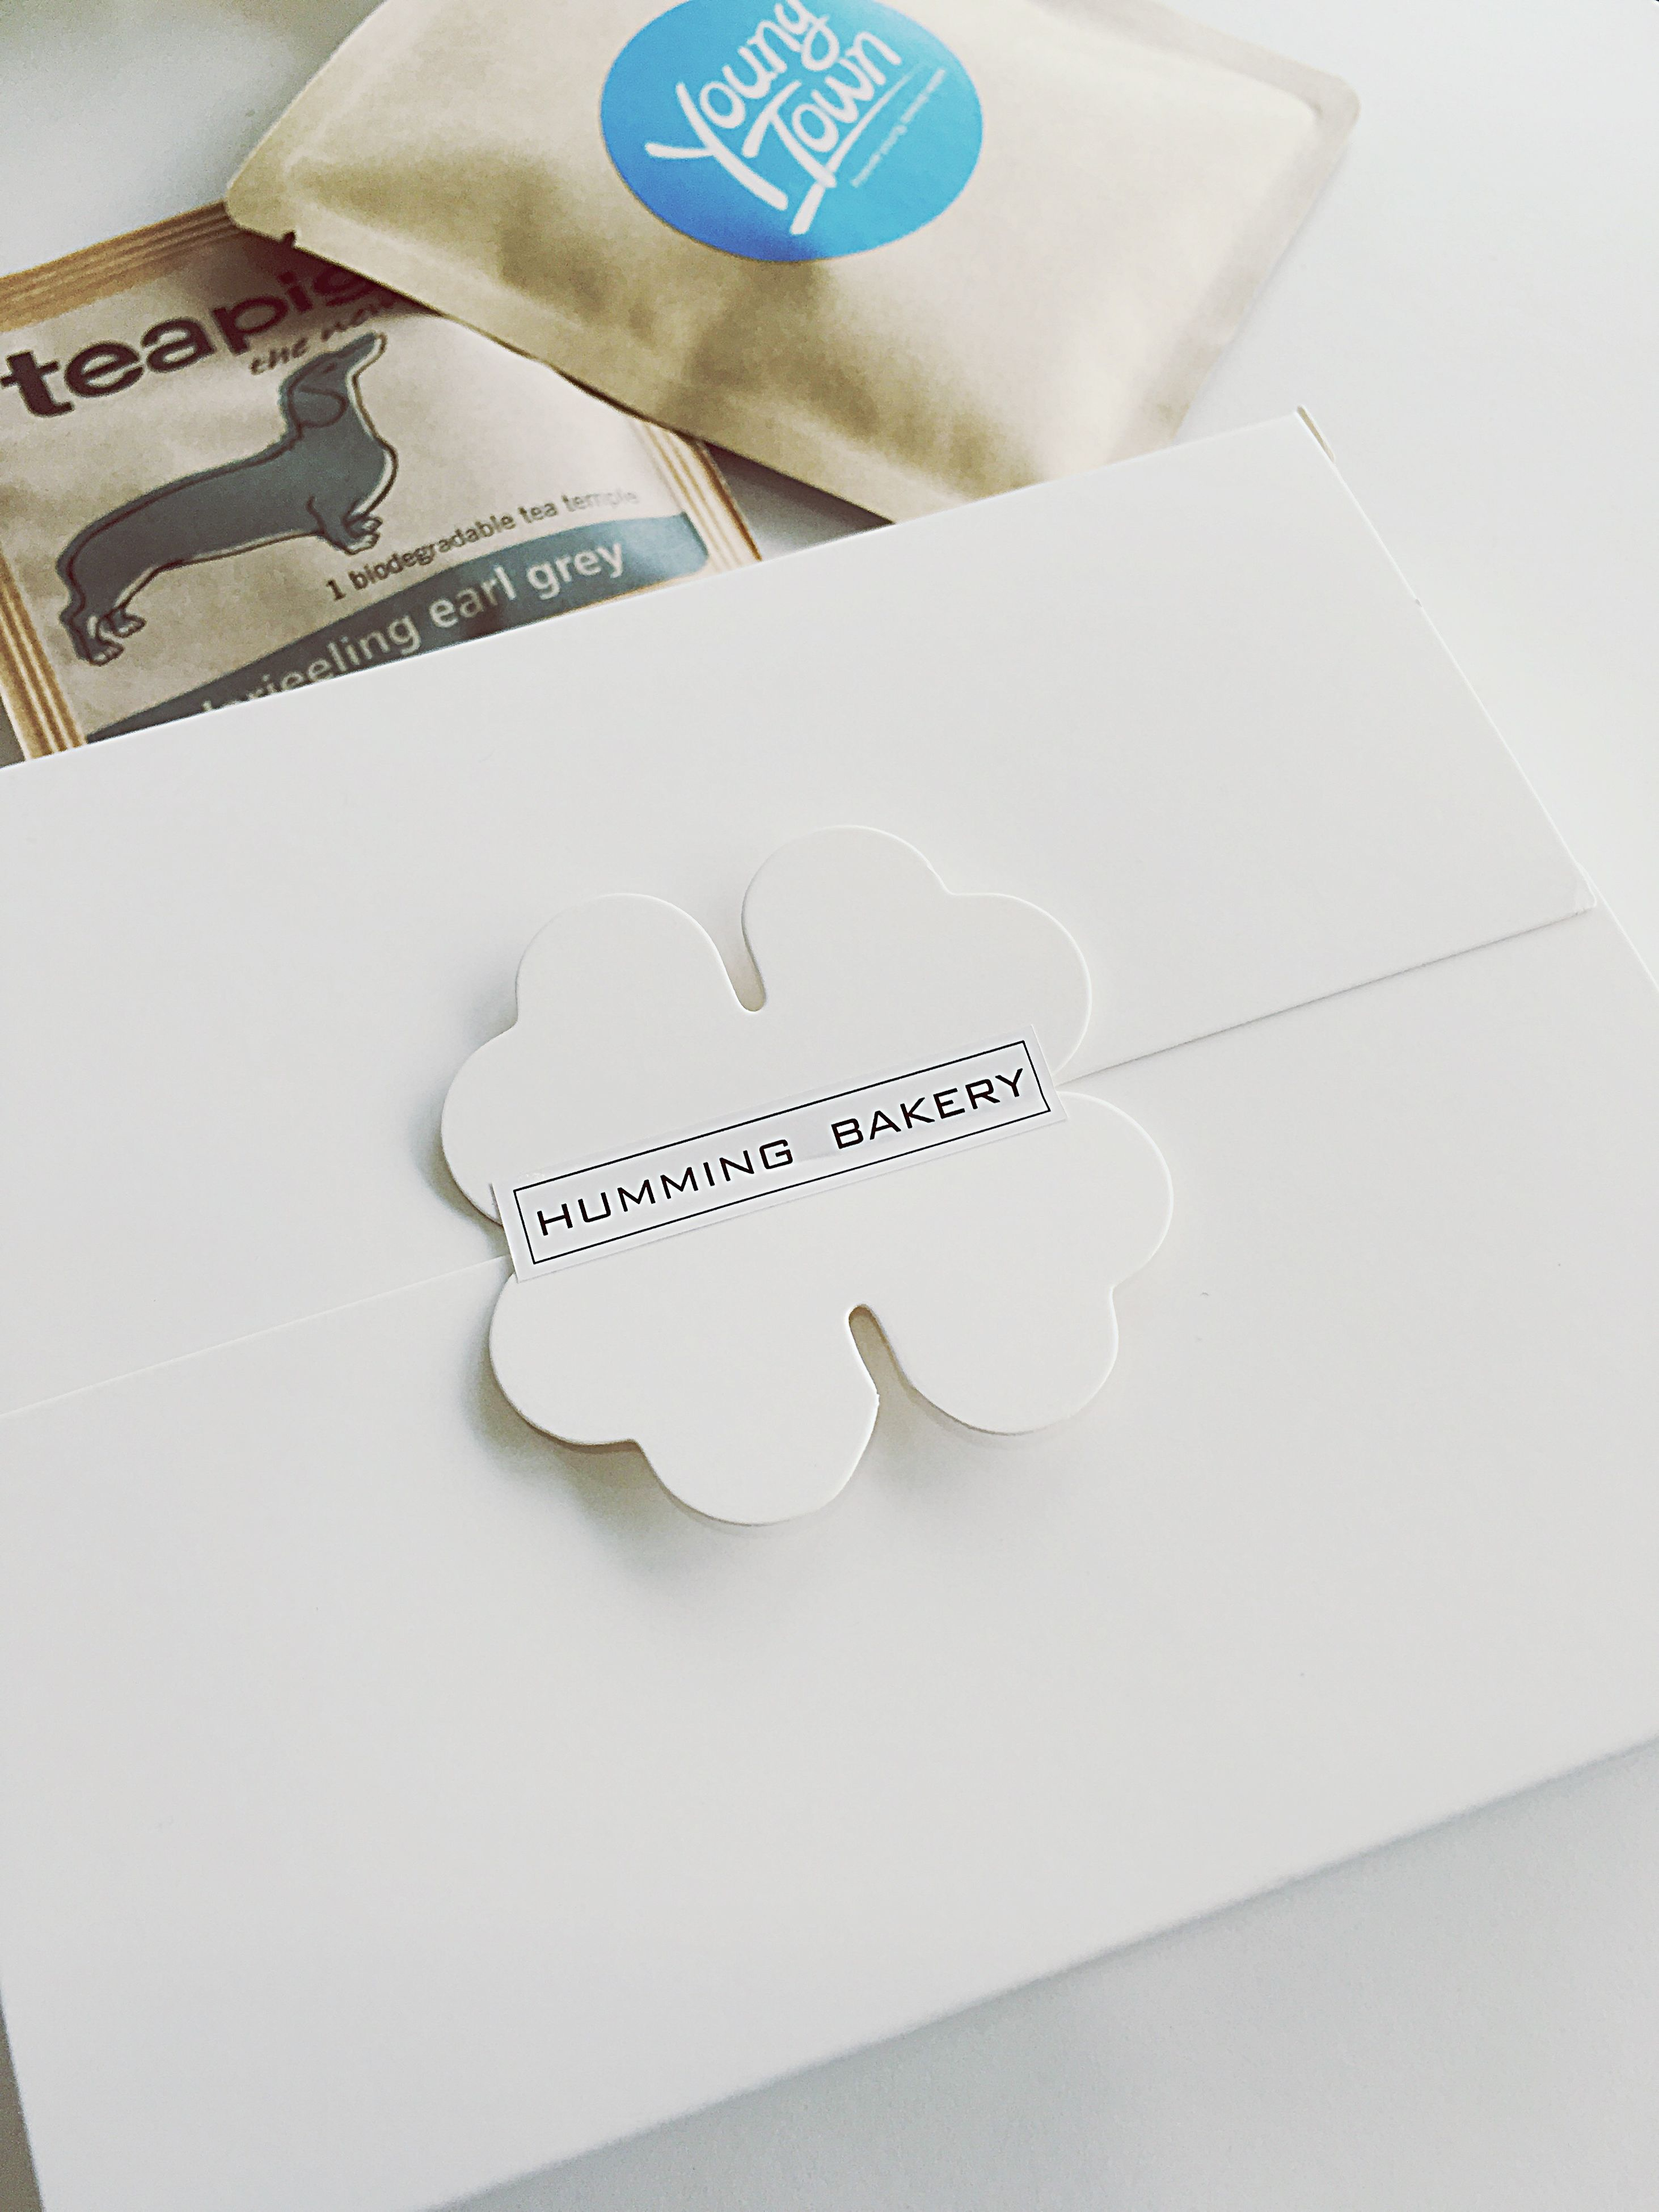 indoors, still life, text, paper, communication, high angle view, table, western script, close-up, white color, creativity, heart shape, art and craft, book, no people, education, art, studio shot, love, ideas